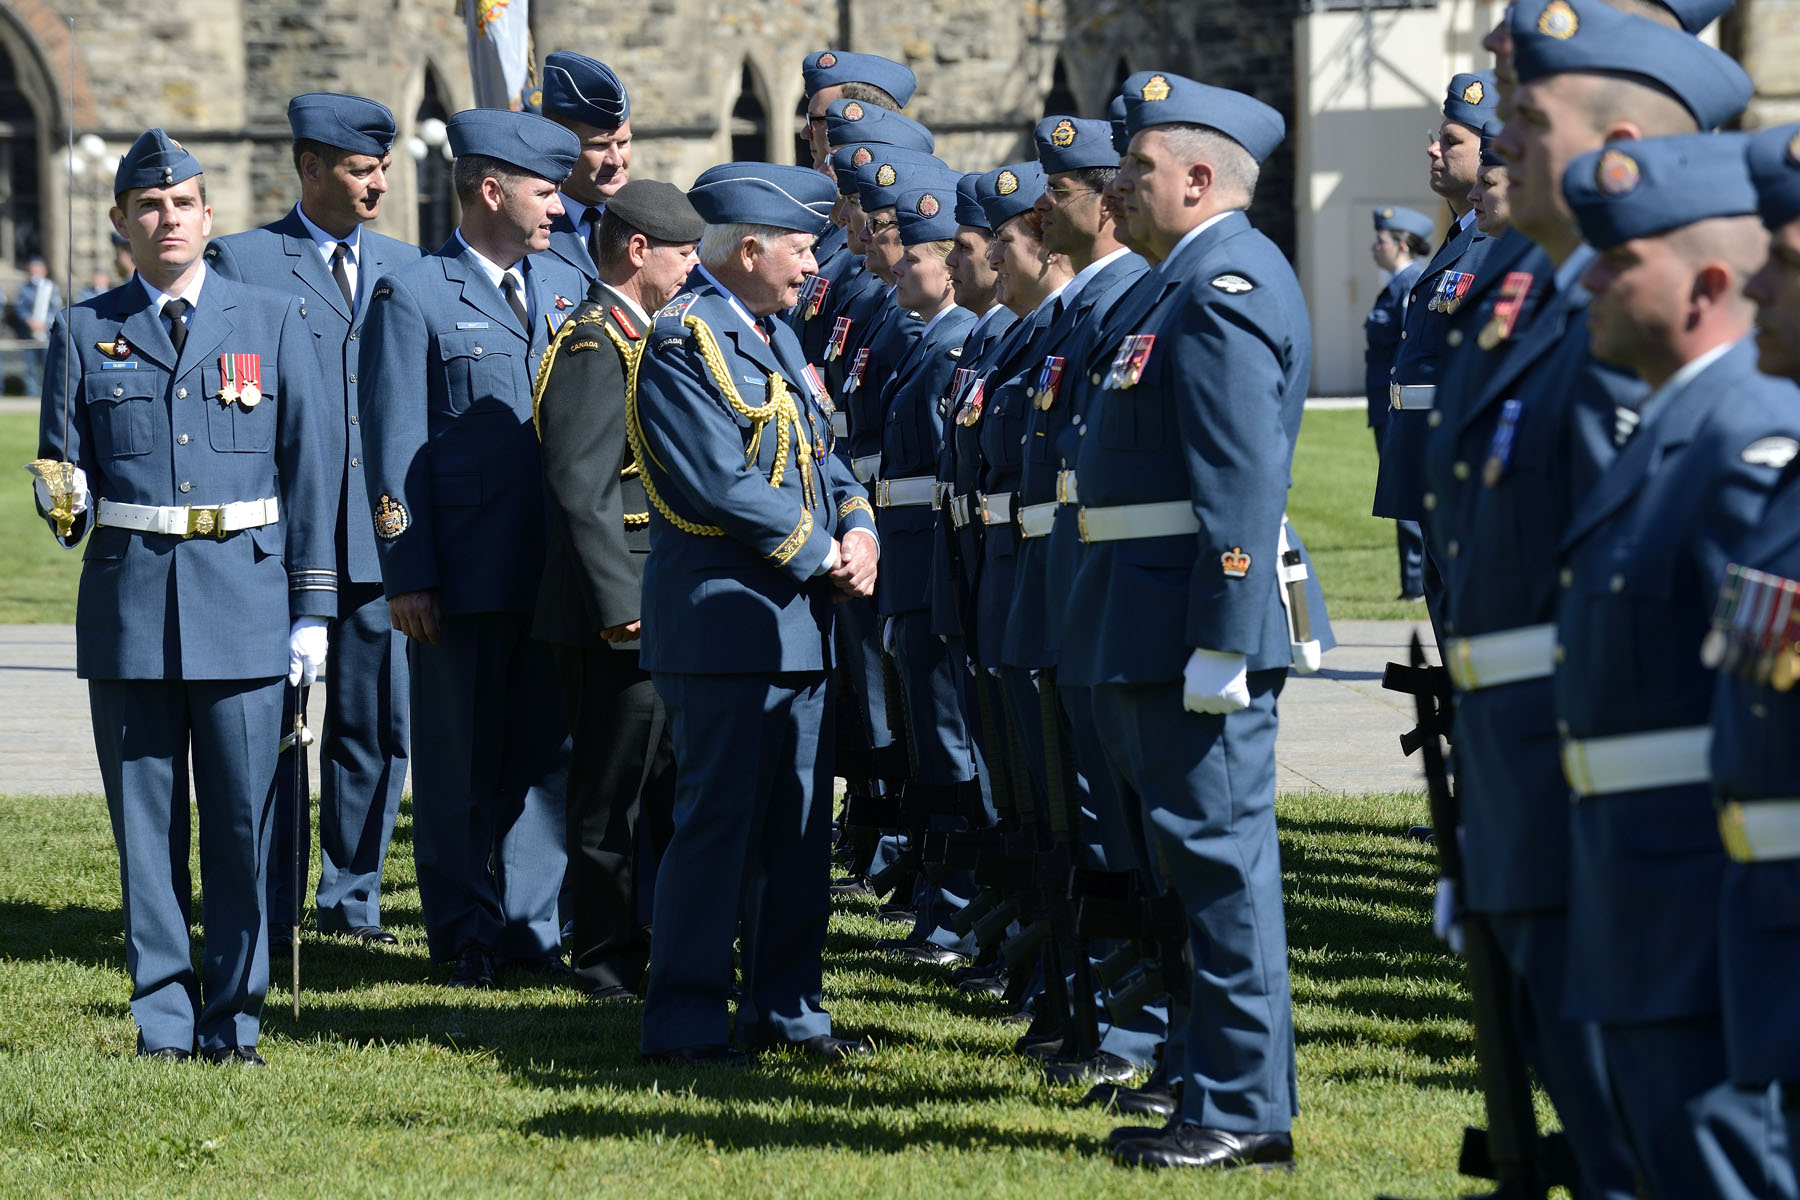 He also inspected members of the Royal Canadian Air force.